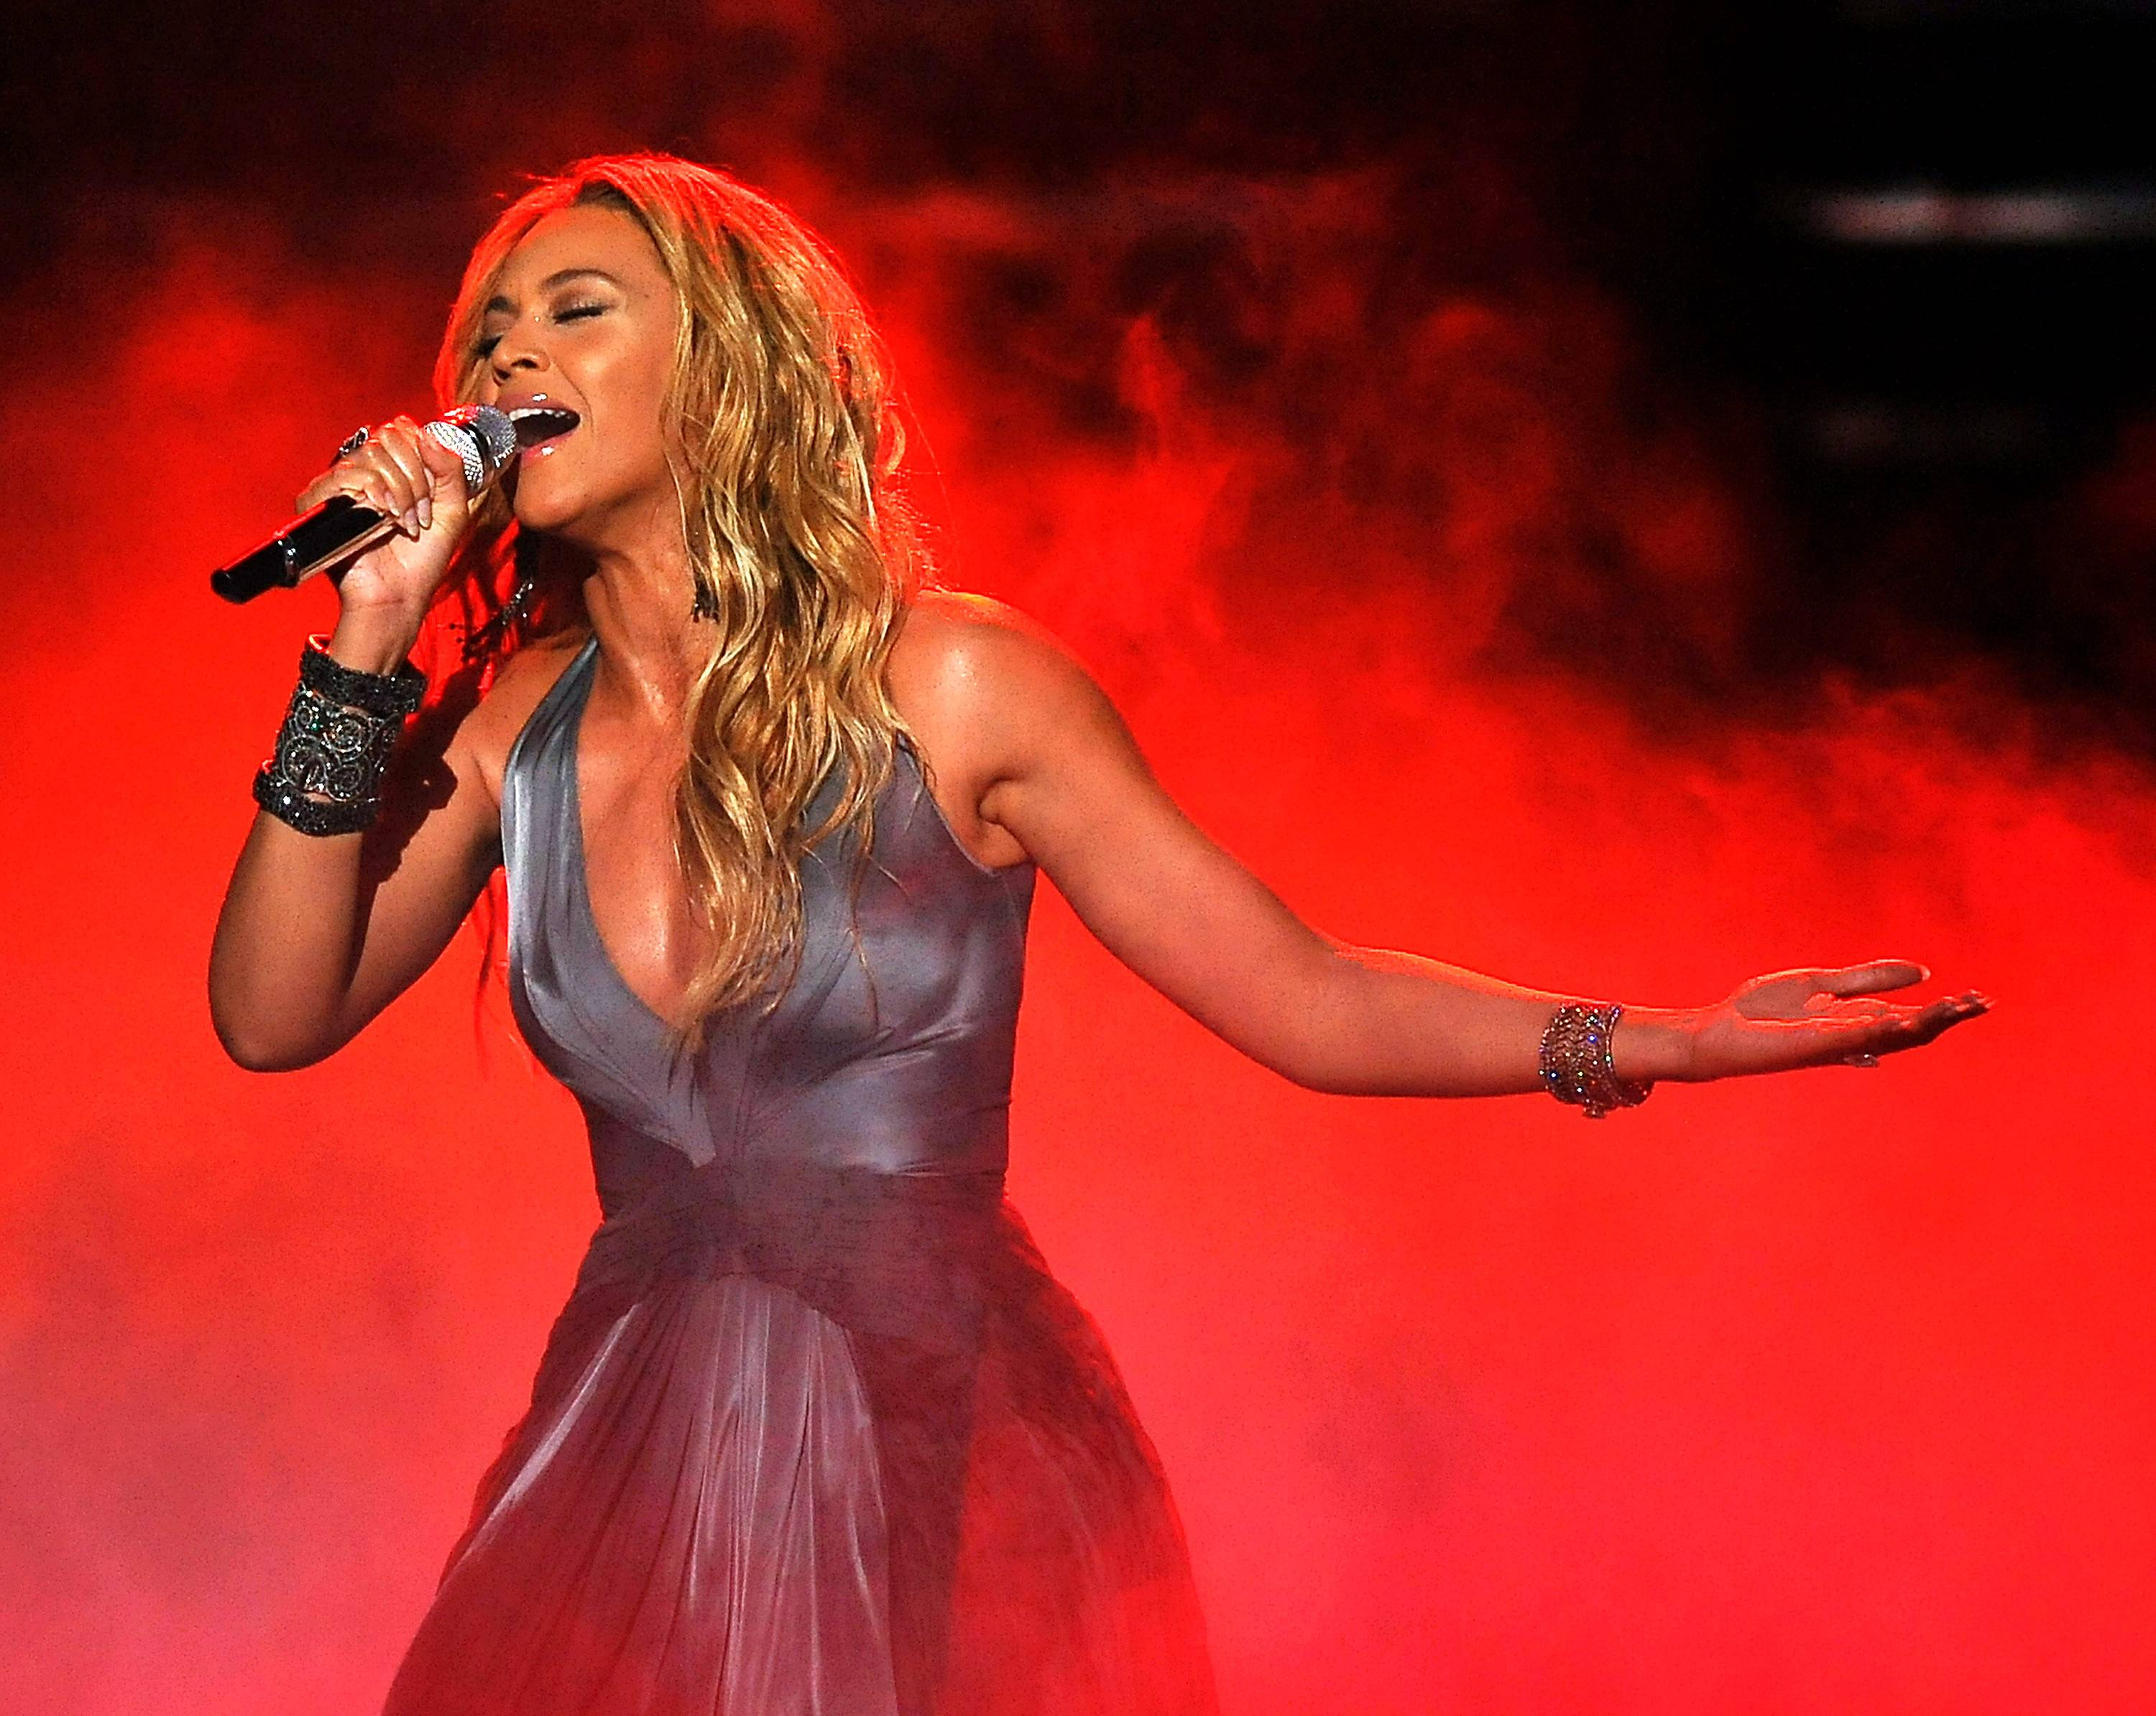 Beyonc? - Before she was the chart-topping, trend-setting superstar that she is now, Beyonc? Knowles appeared on Star Search as part of Girls Tyme?the group that would eventually become Destiny's Child.(Photo: Mark Davis/Fox/PictureGroup)